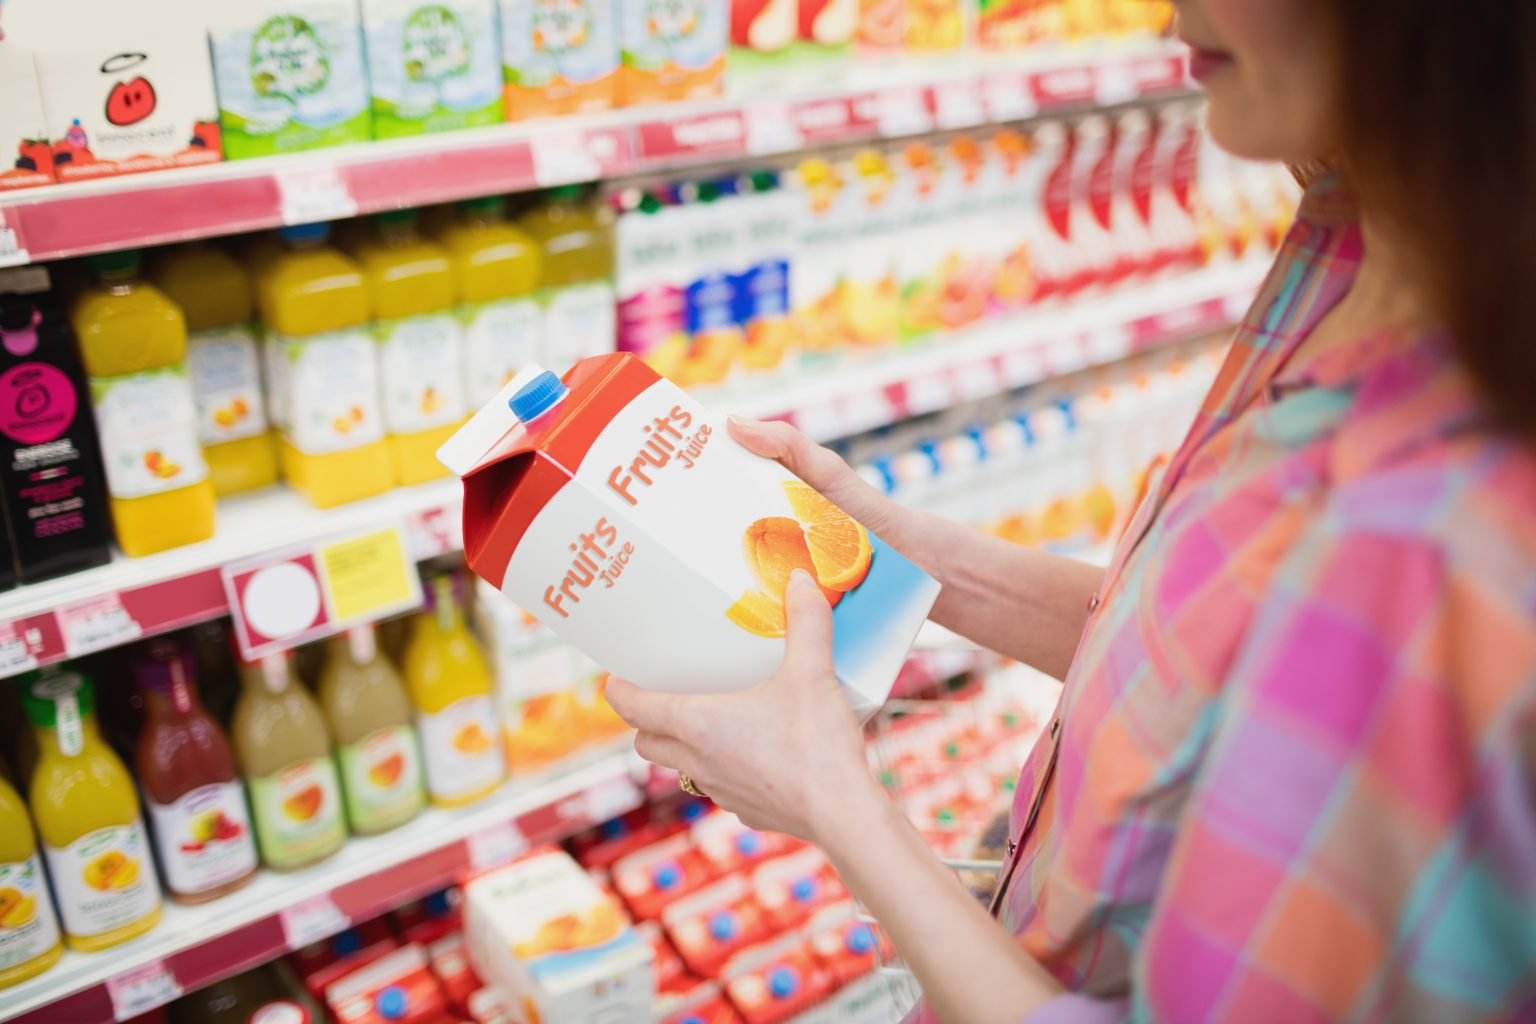 White woman with long brown hair wearing colorful plaid shirt stands in grocery store aisle holding carton reading